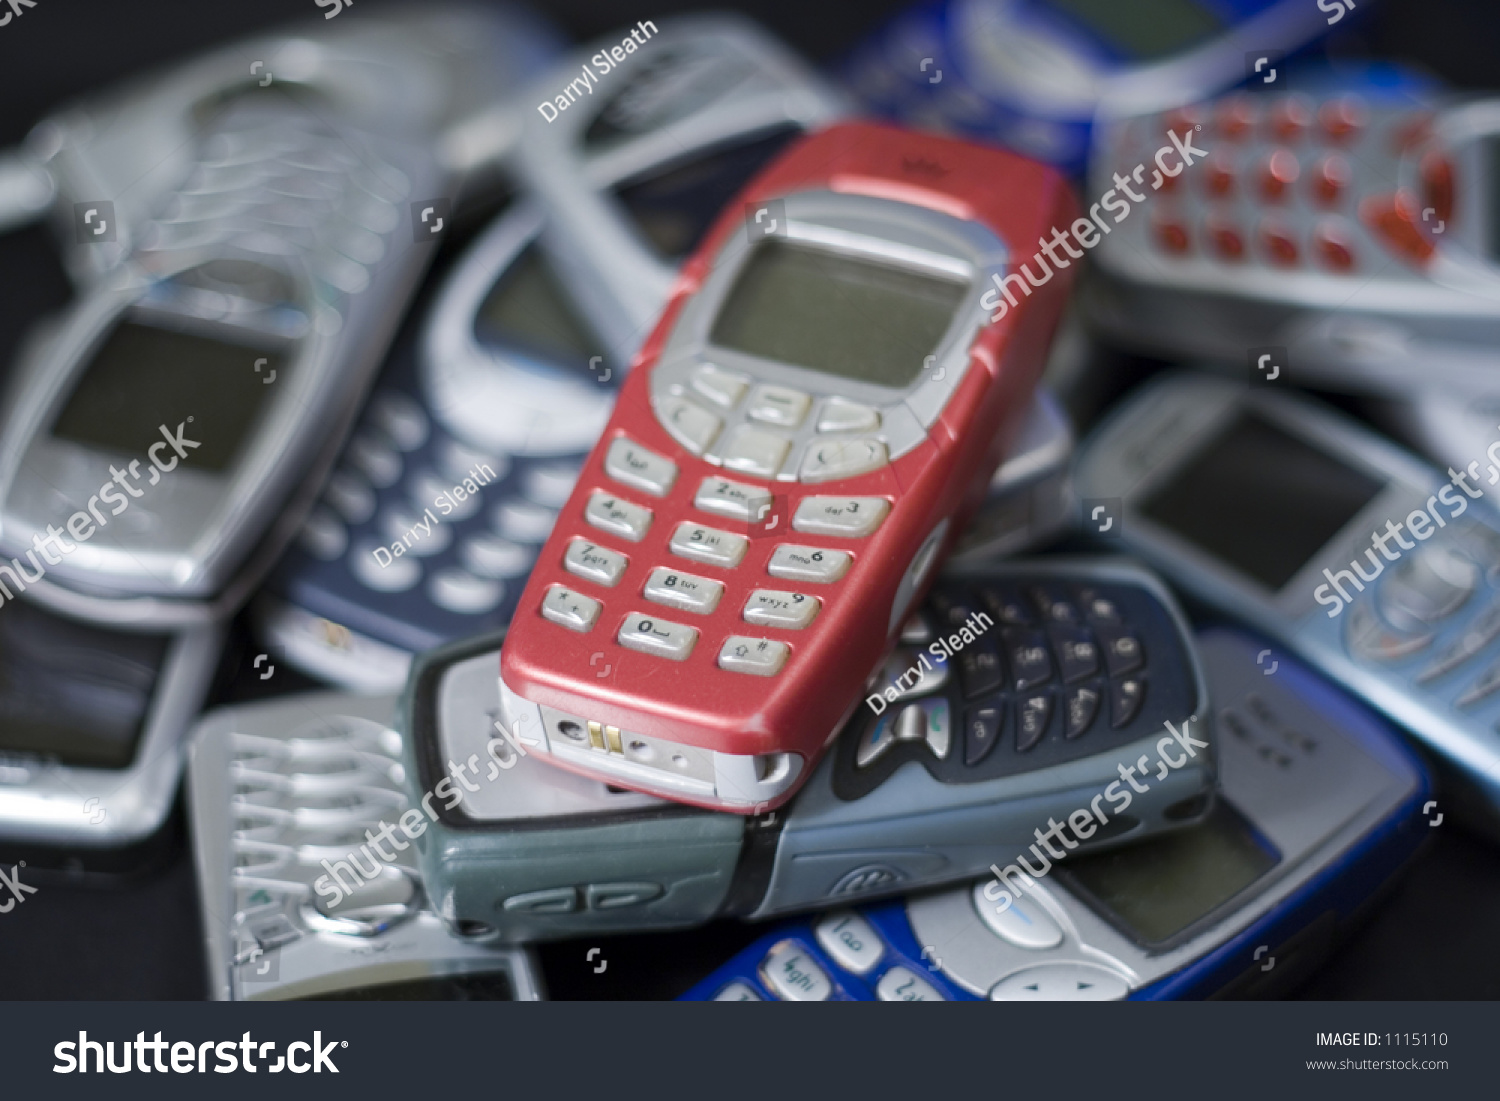 Pile Of Cell Phones : Pile mobile cell phones stock photo  shutterstock